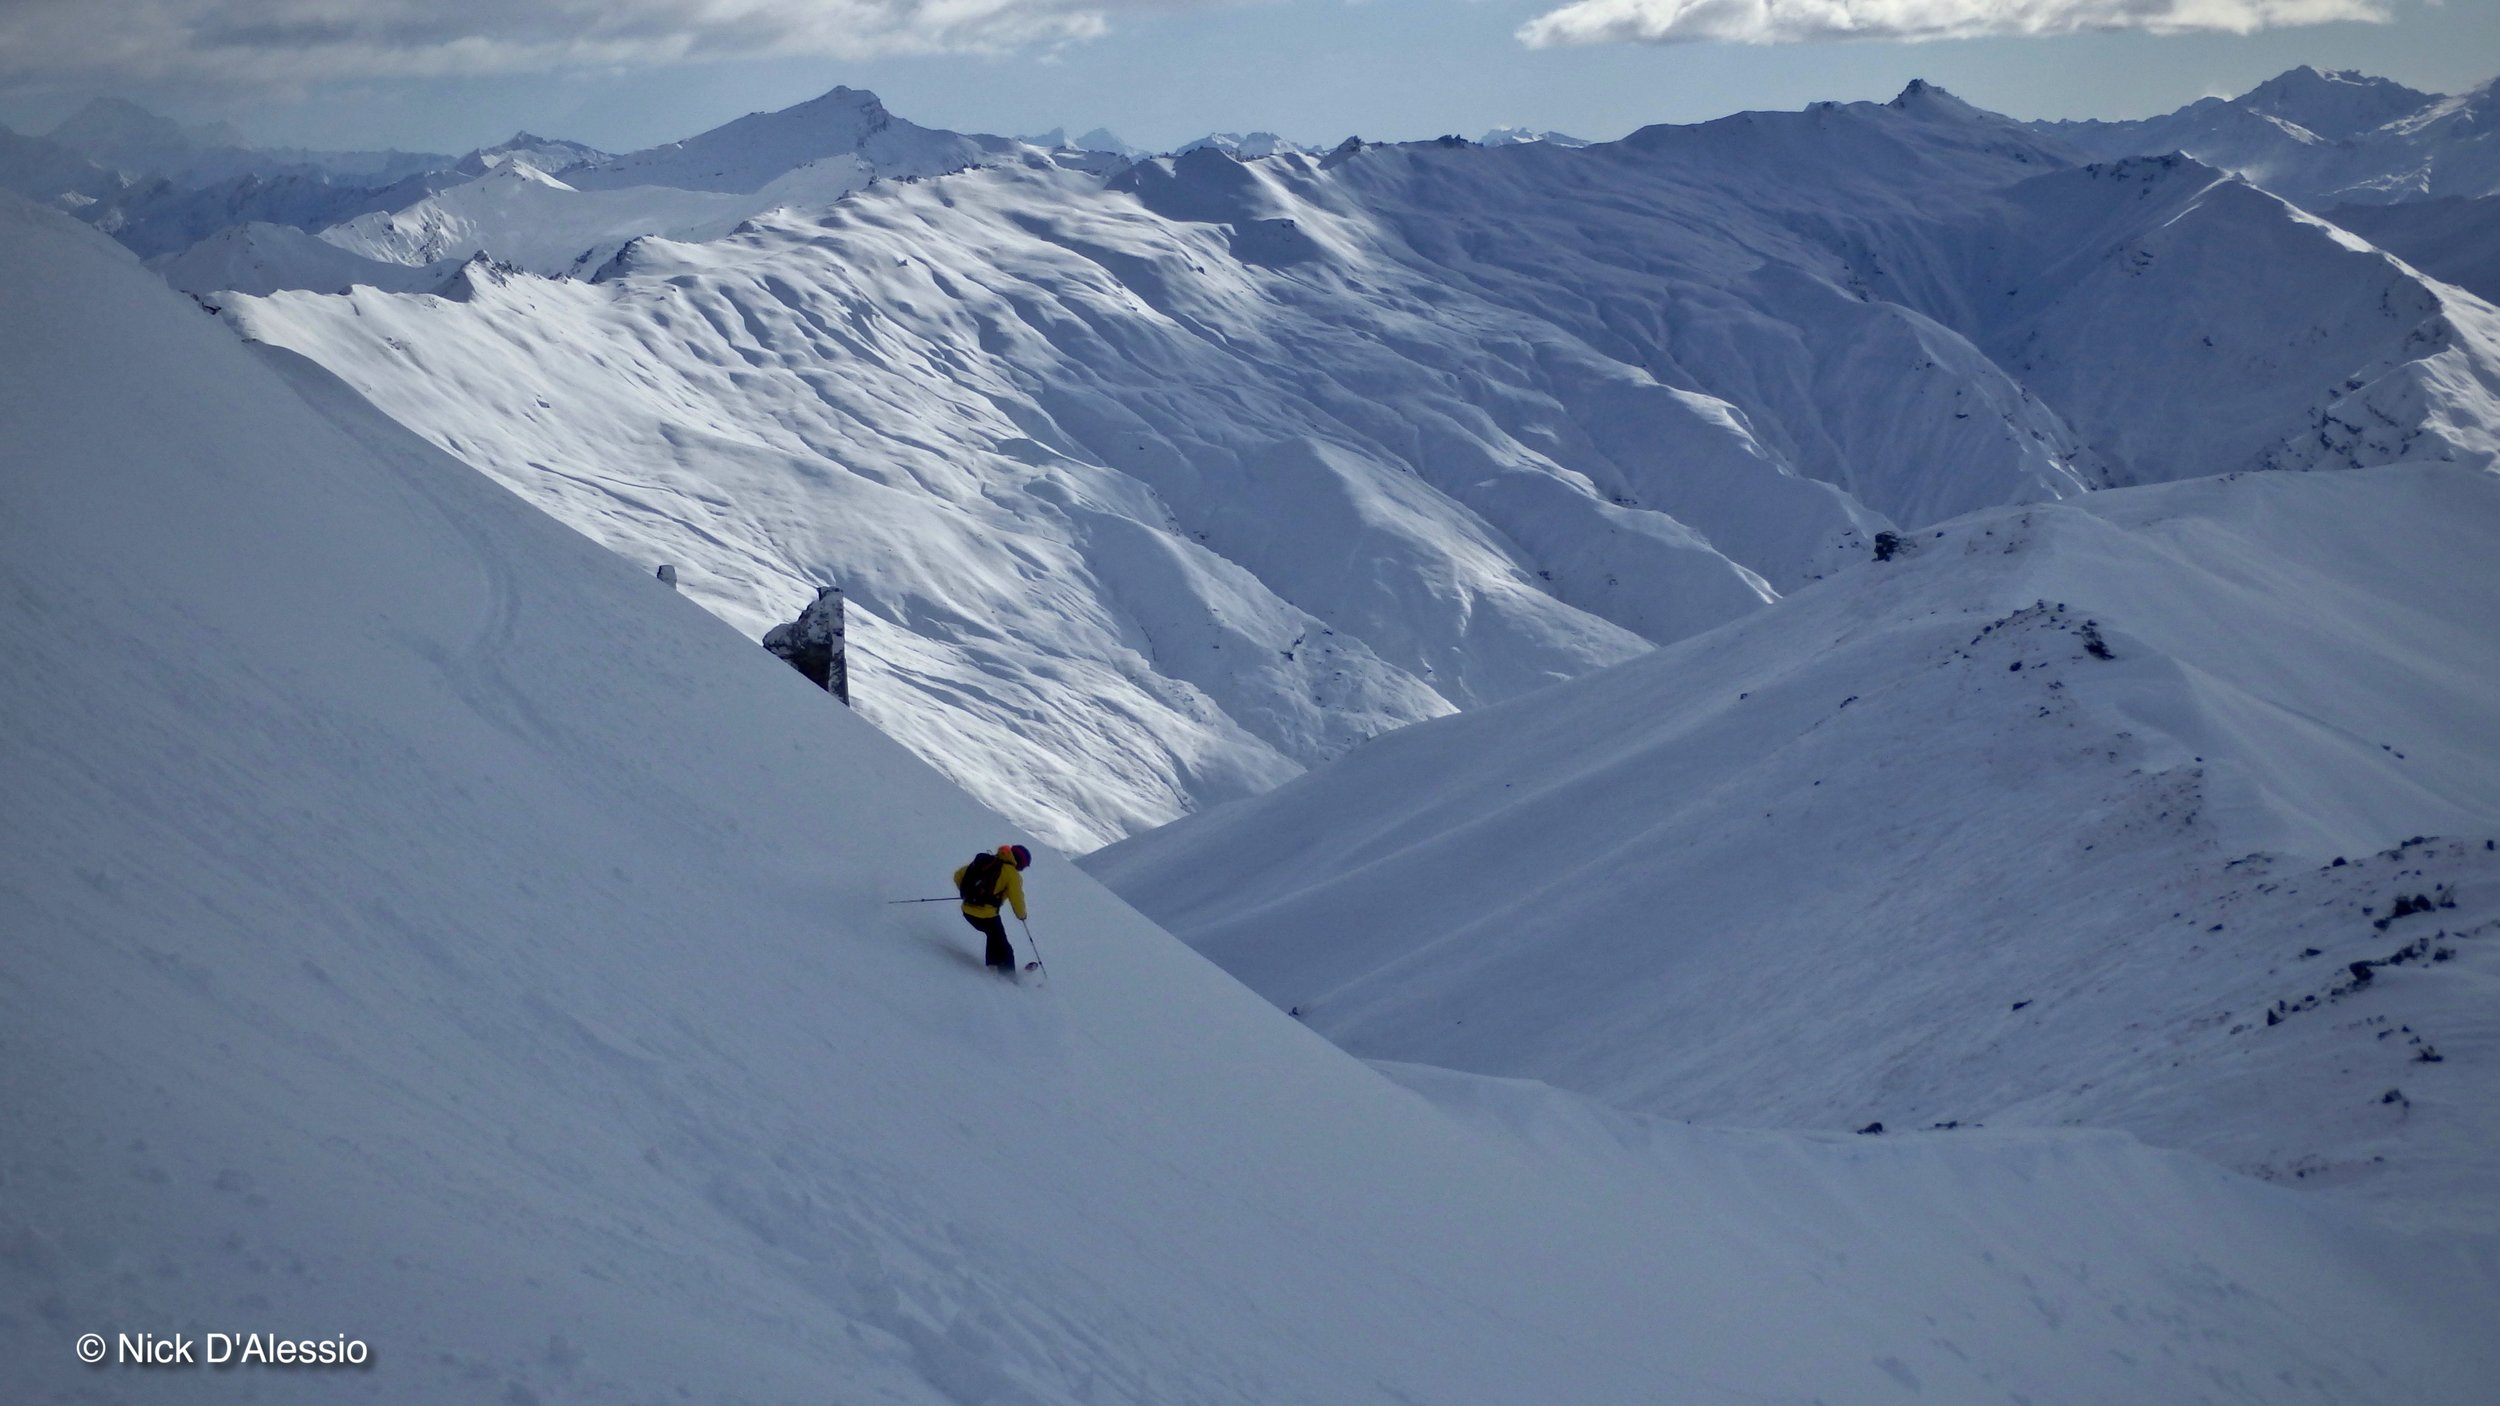 Skiing. Photo by Ski Guide Nick D'Alessio